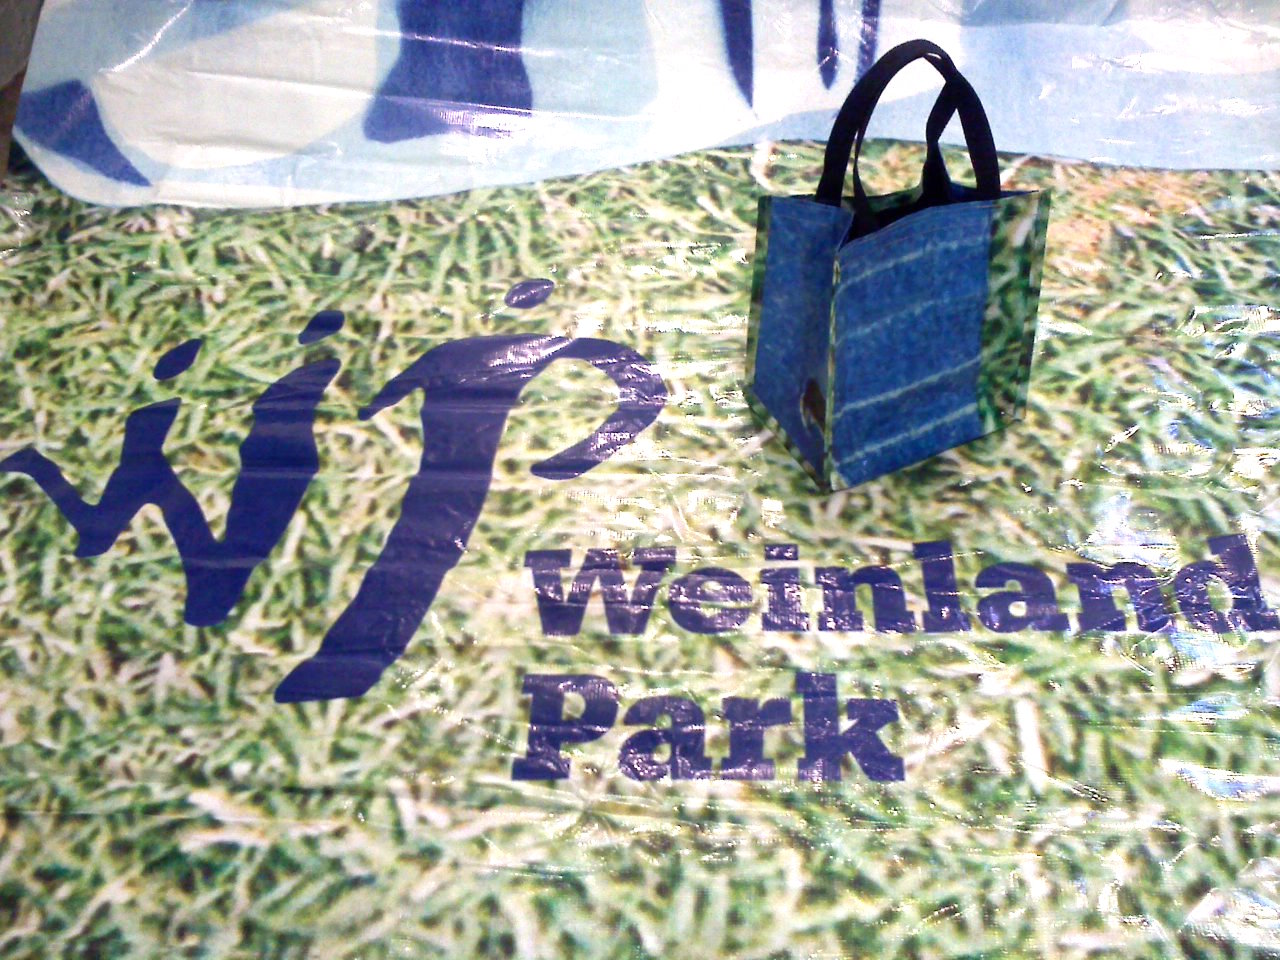 Completed bag from the Weinland Park Billboard